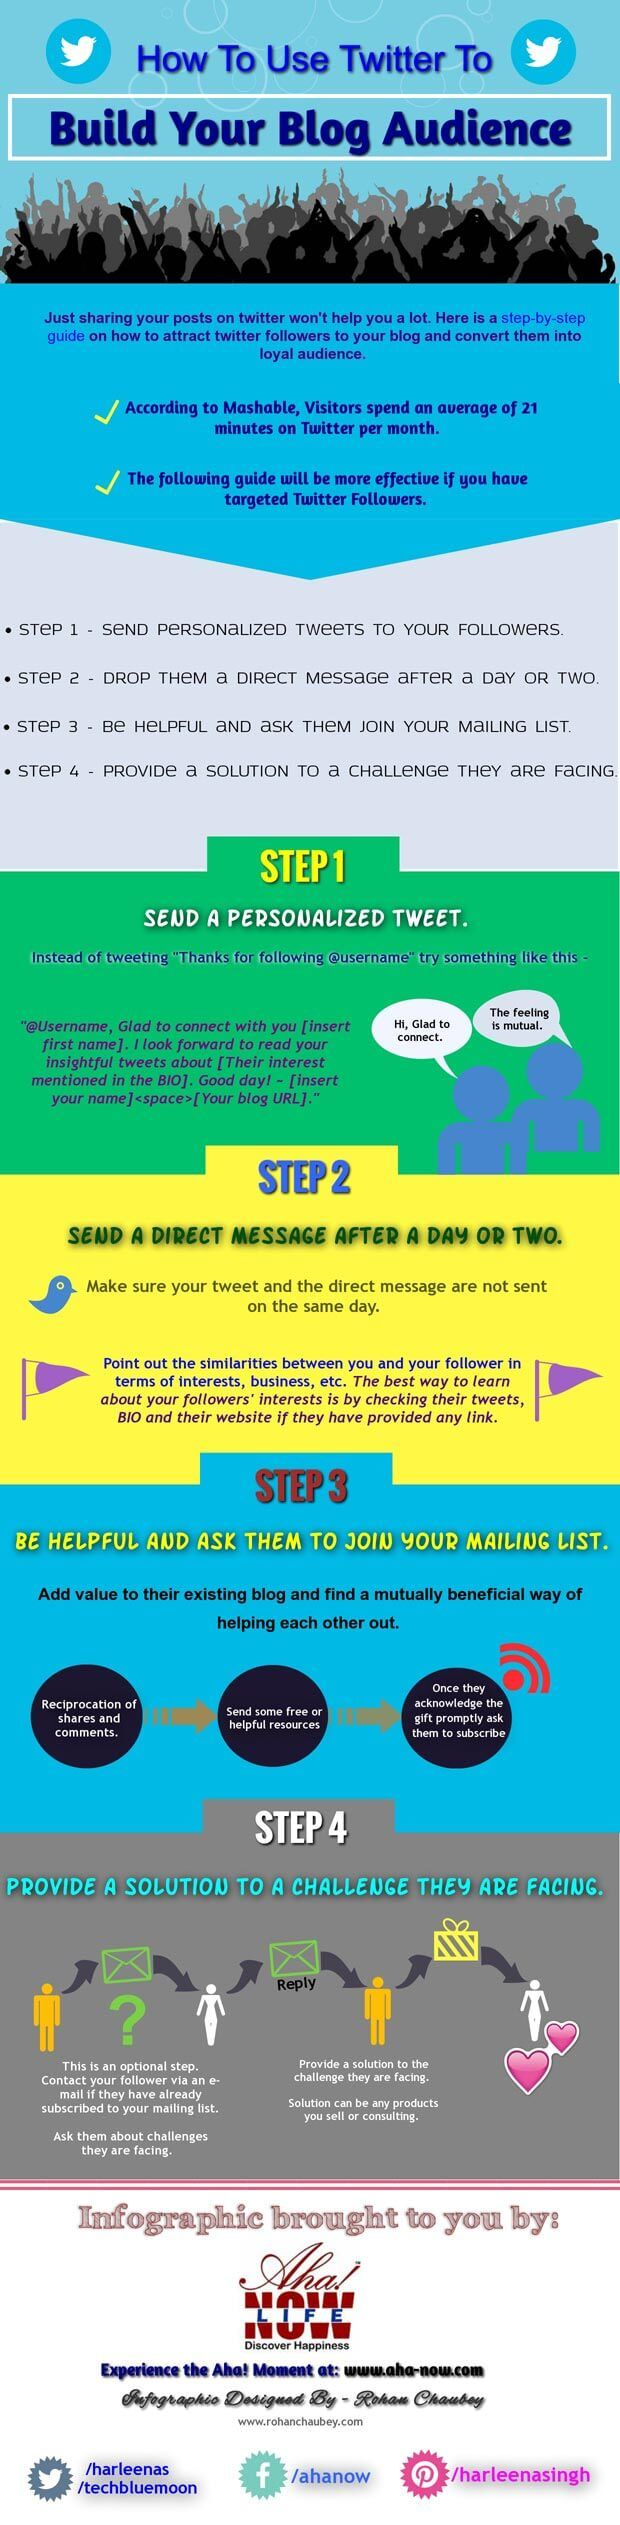 infographic of how to use Twitter to build a blog audience